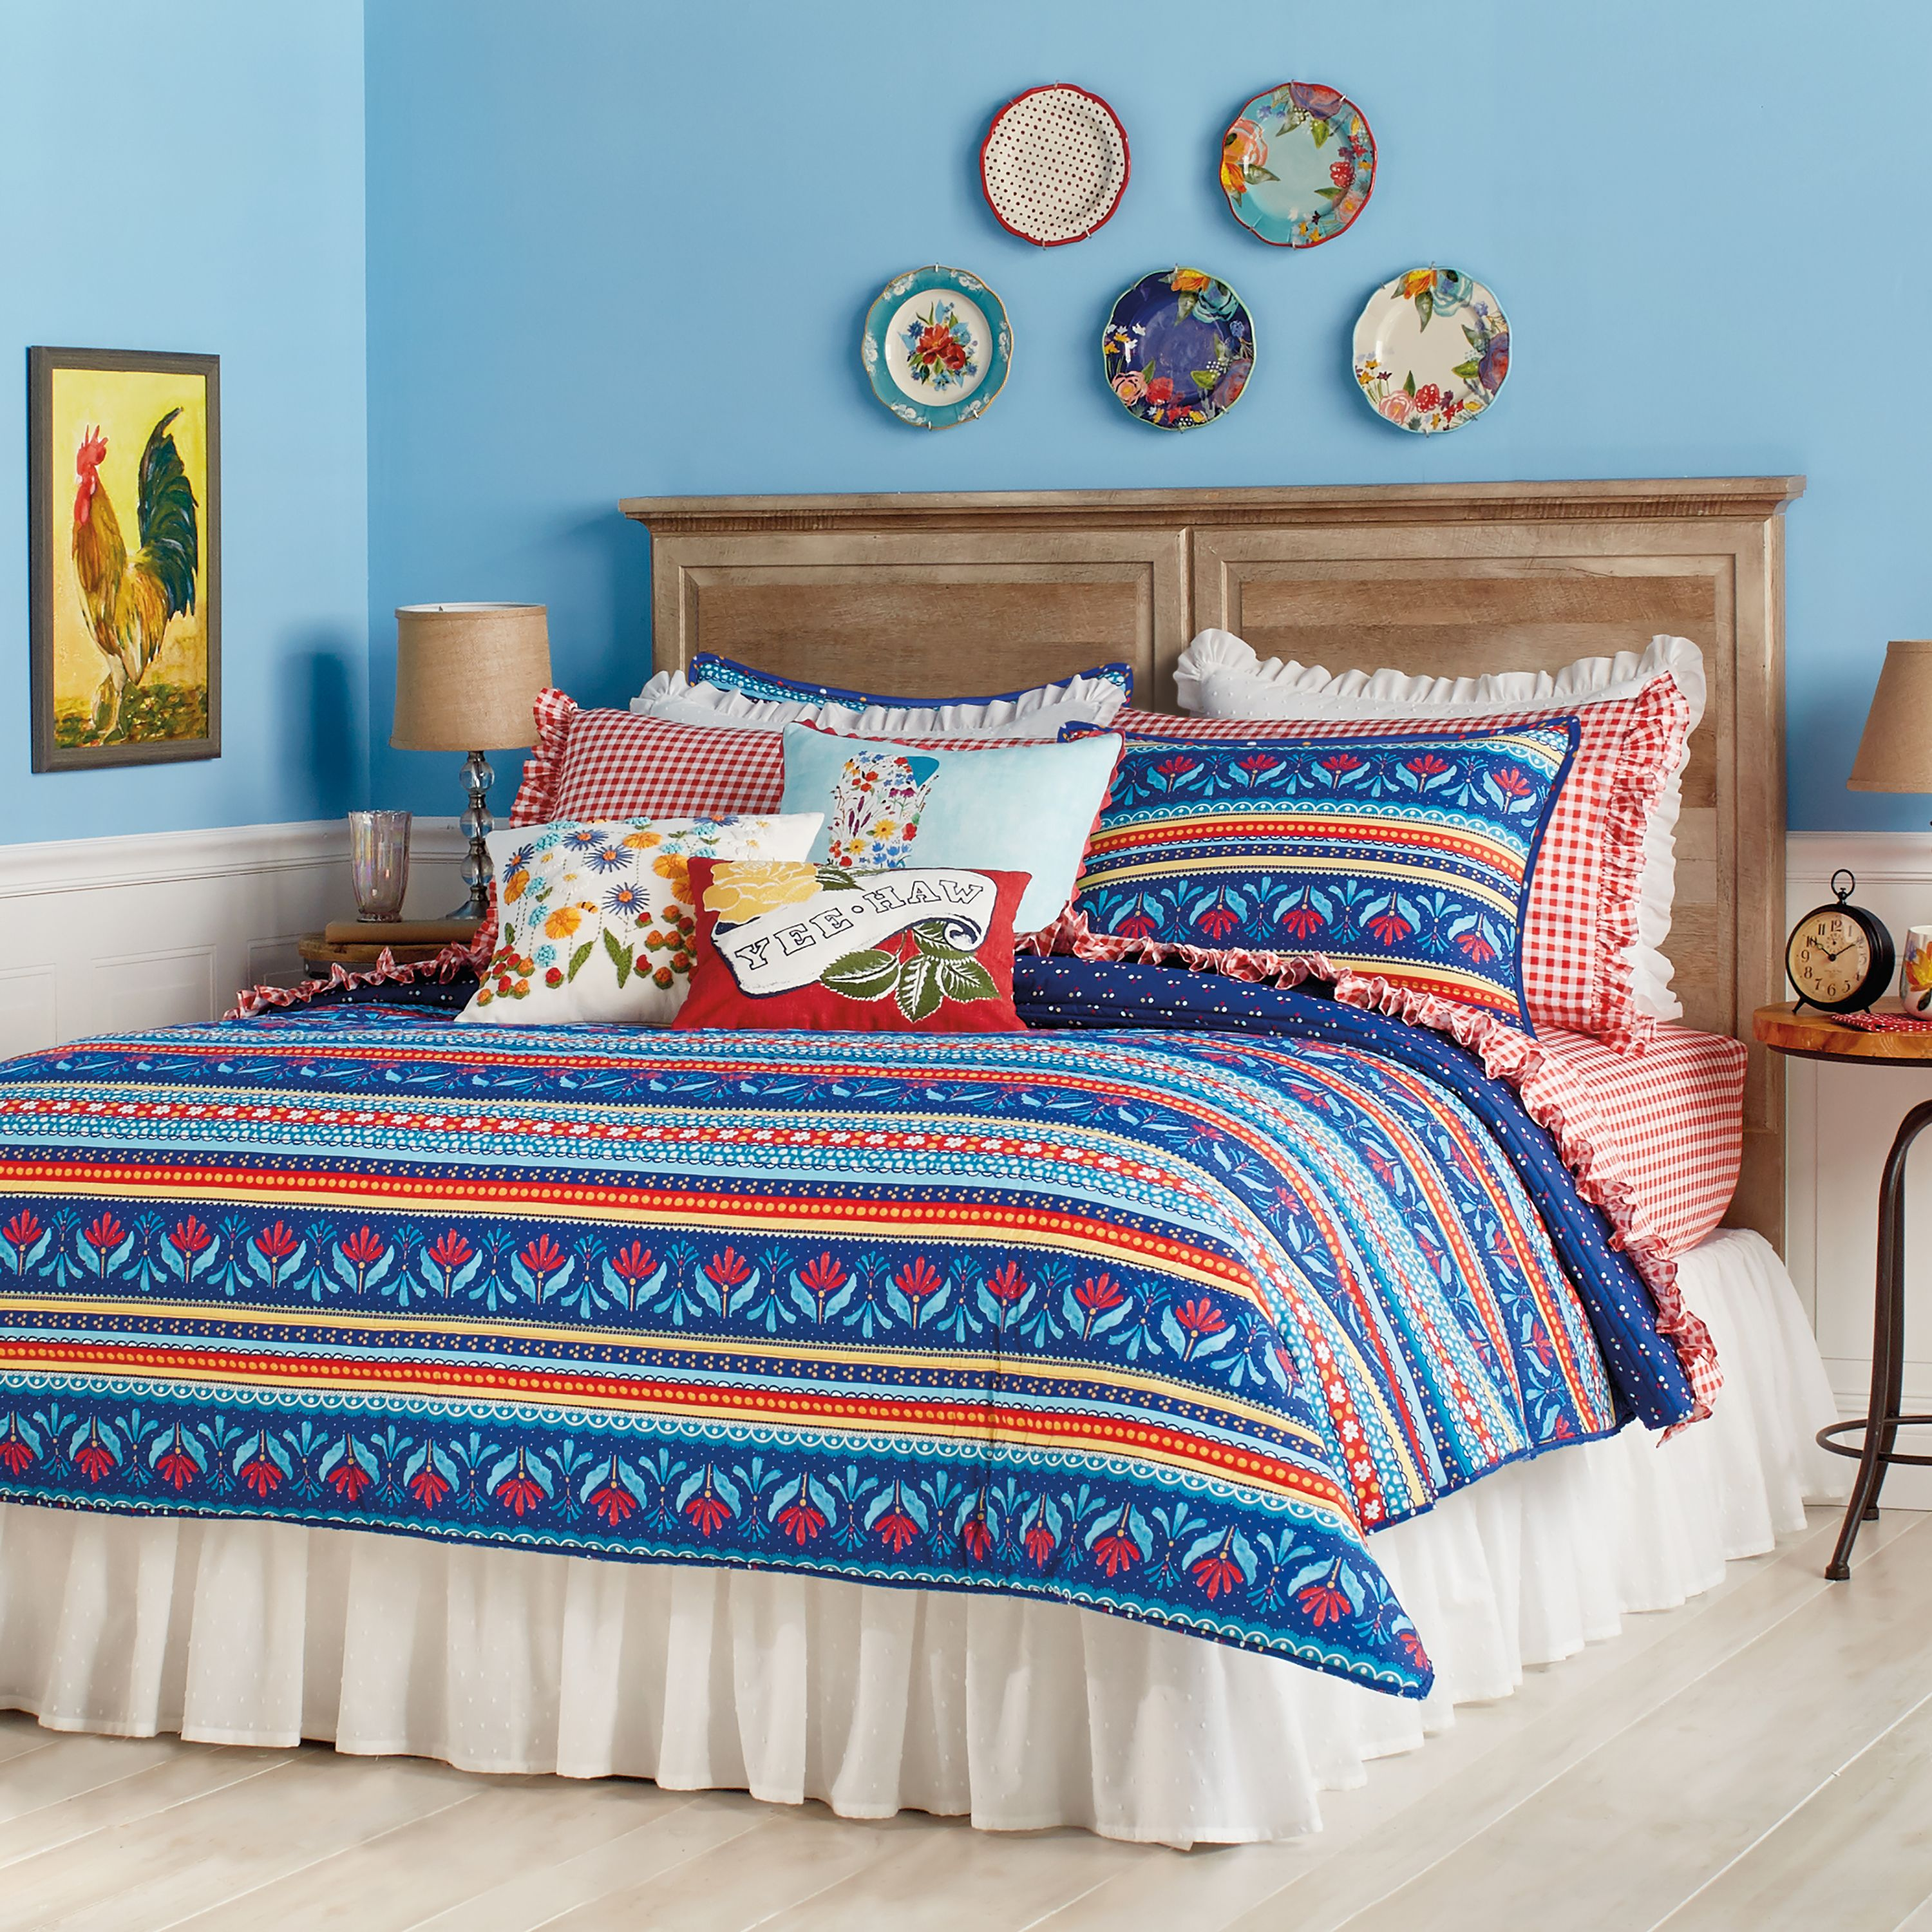 The Pioneer Woman Country Girl Stripe Quilt 3 Piece Set - Walmart.com